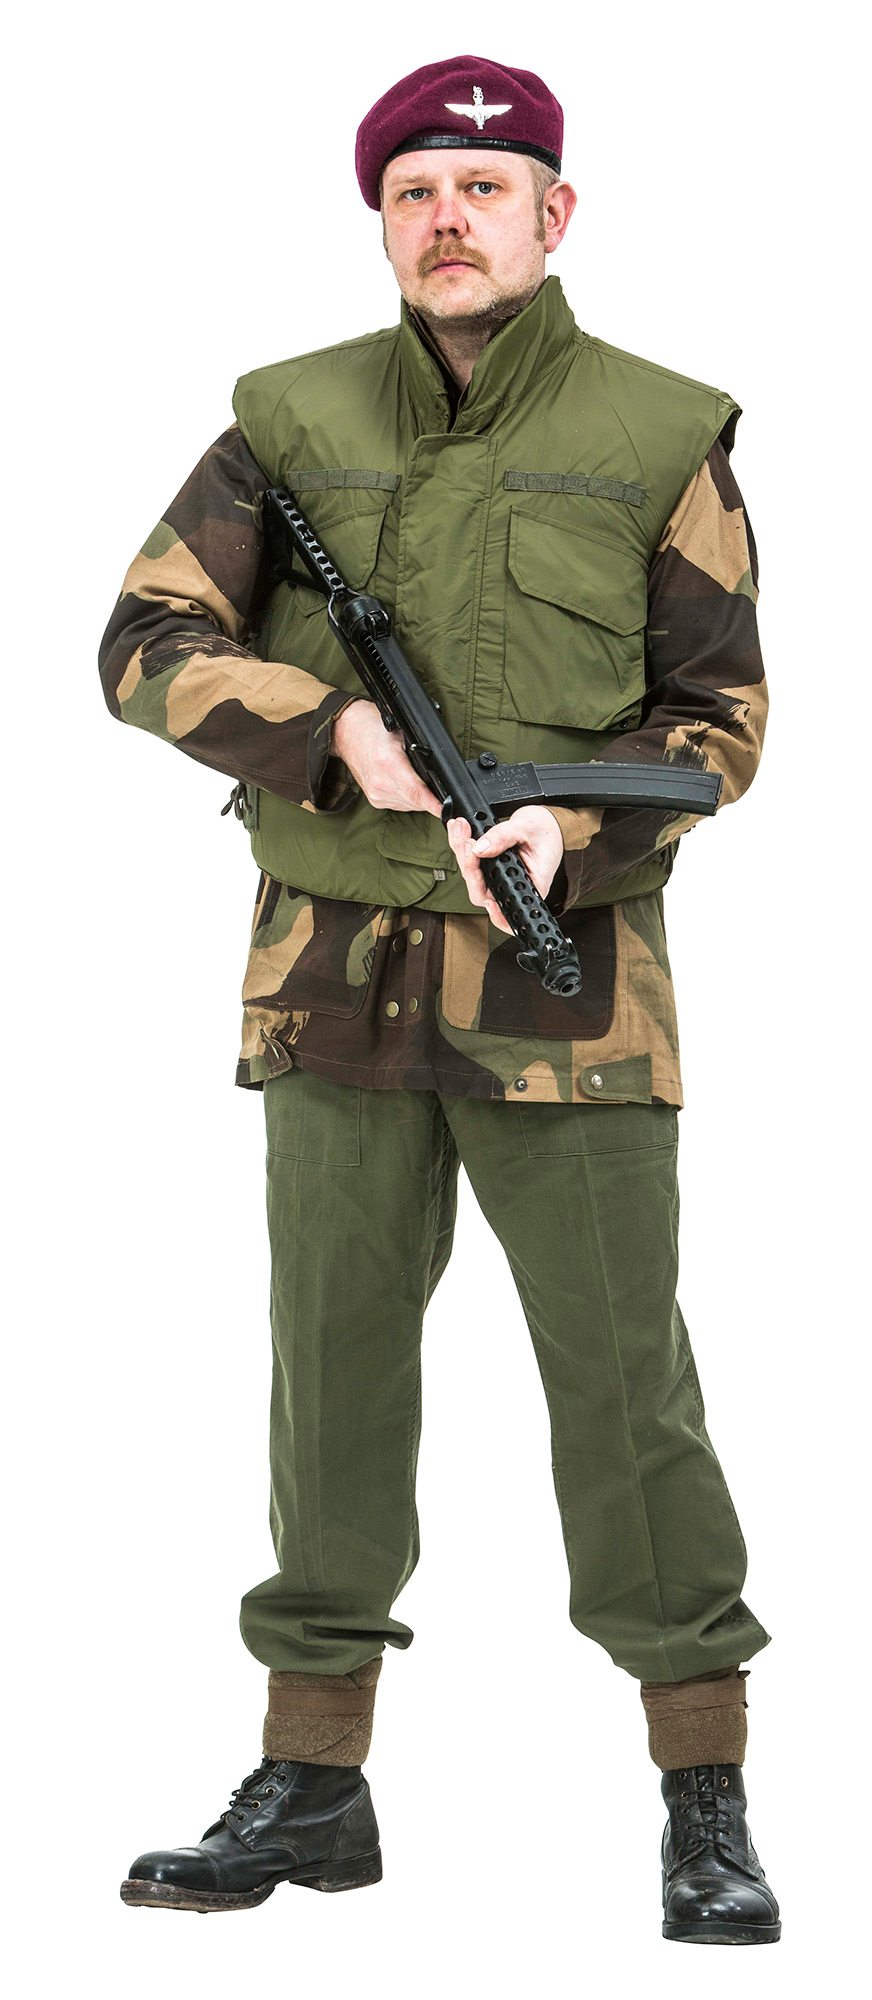 British Paratrooper Uniform 1969 Northern Ireland